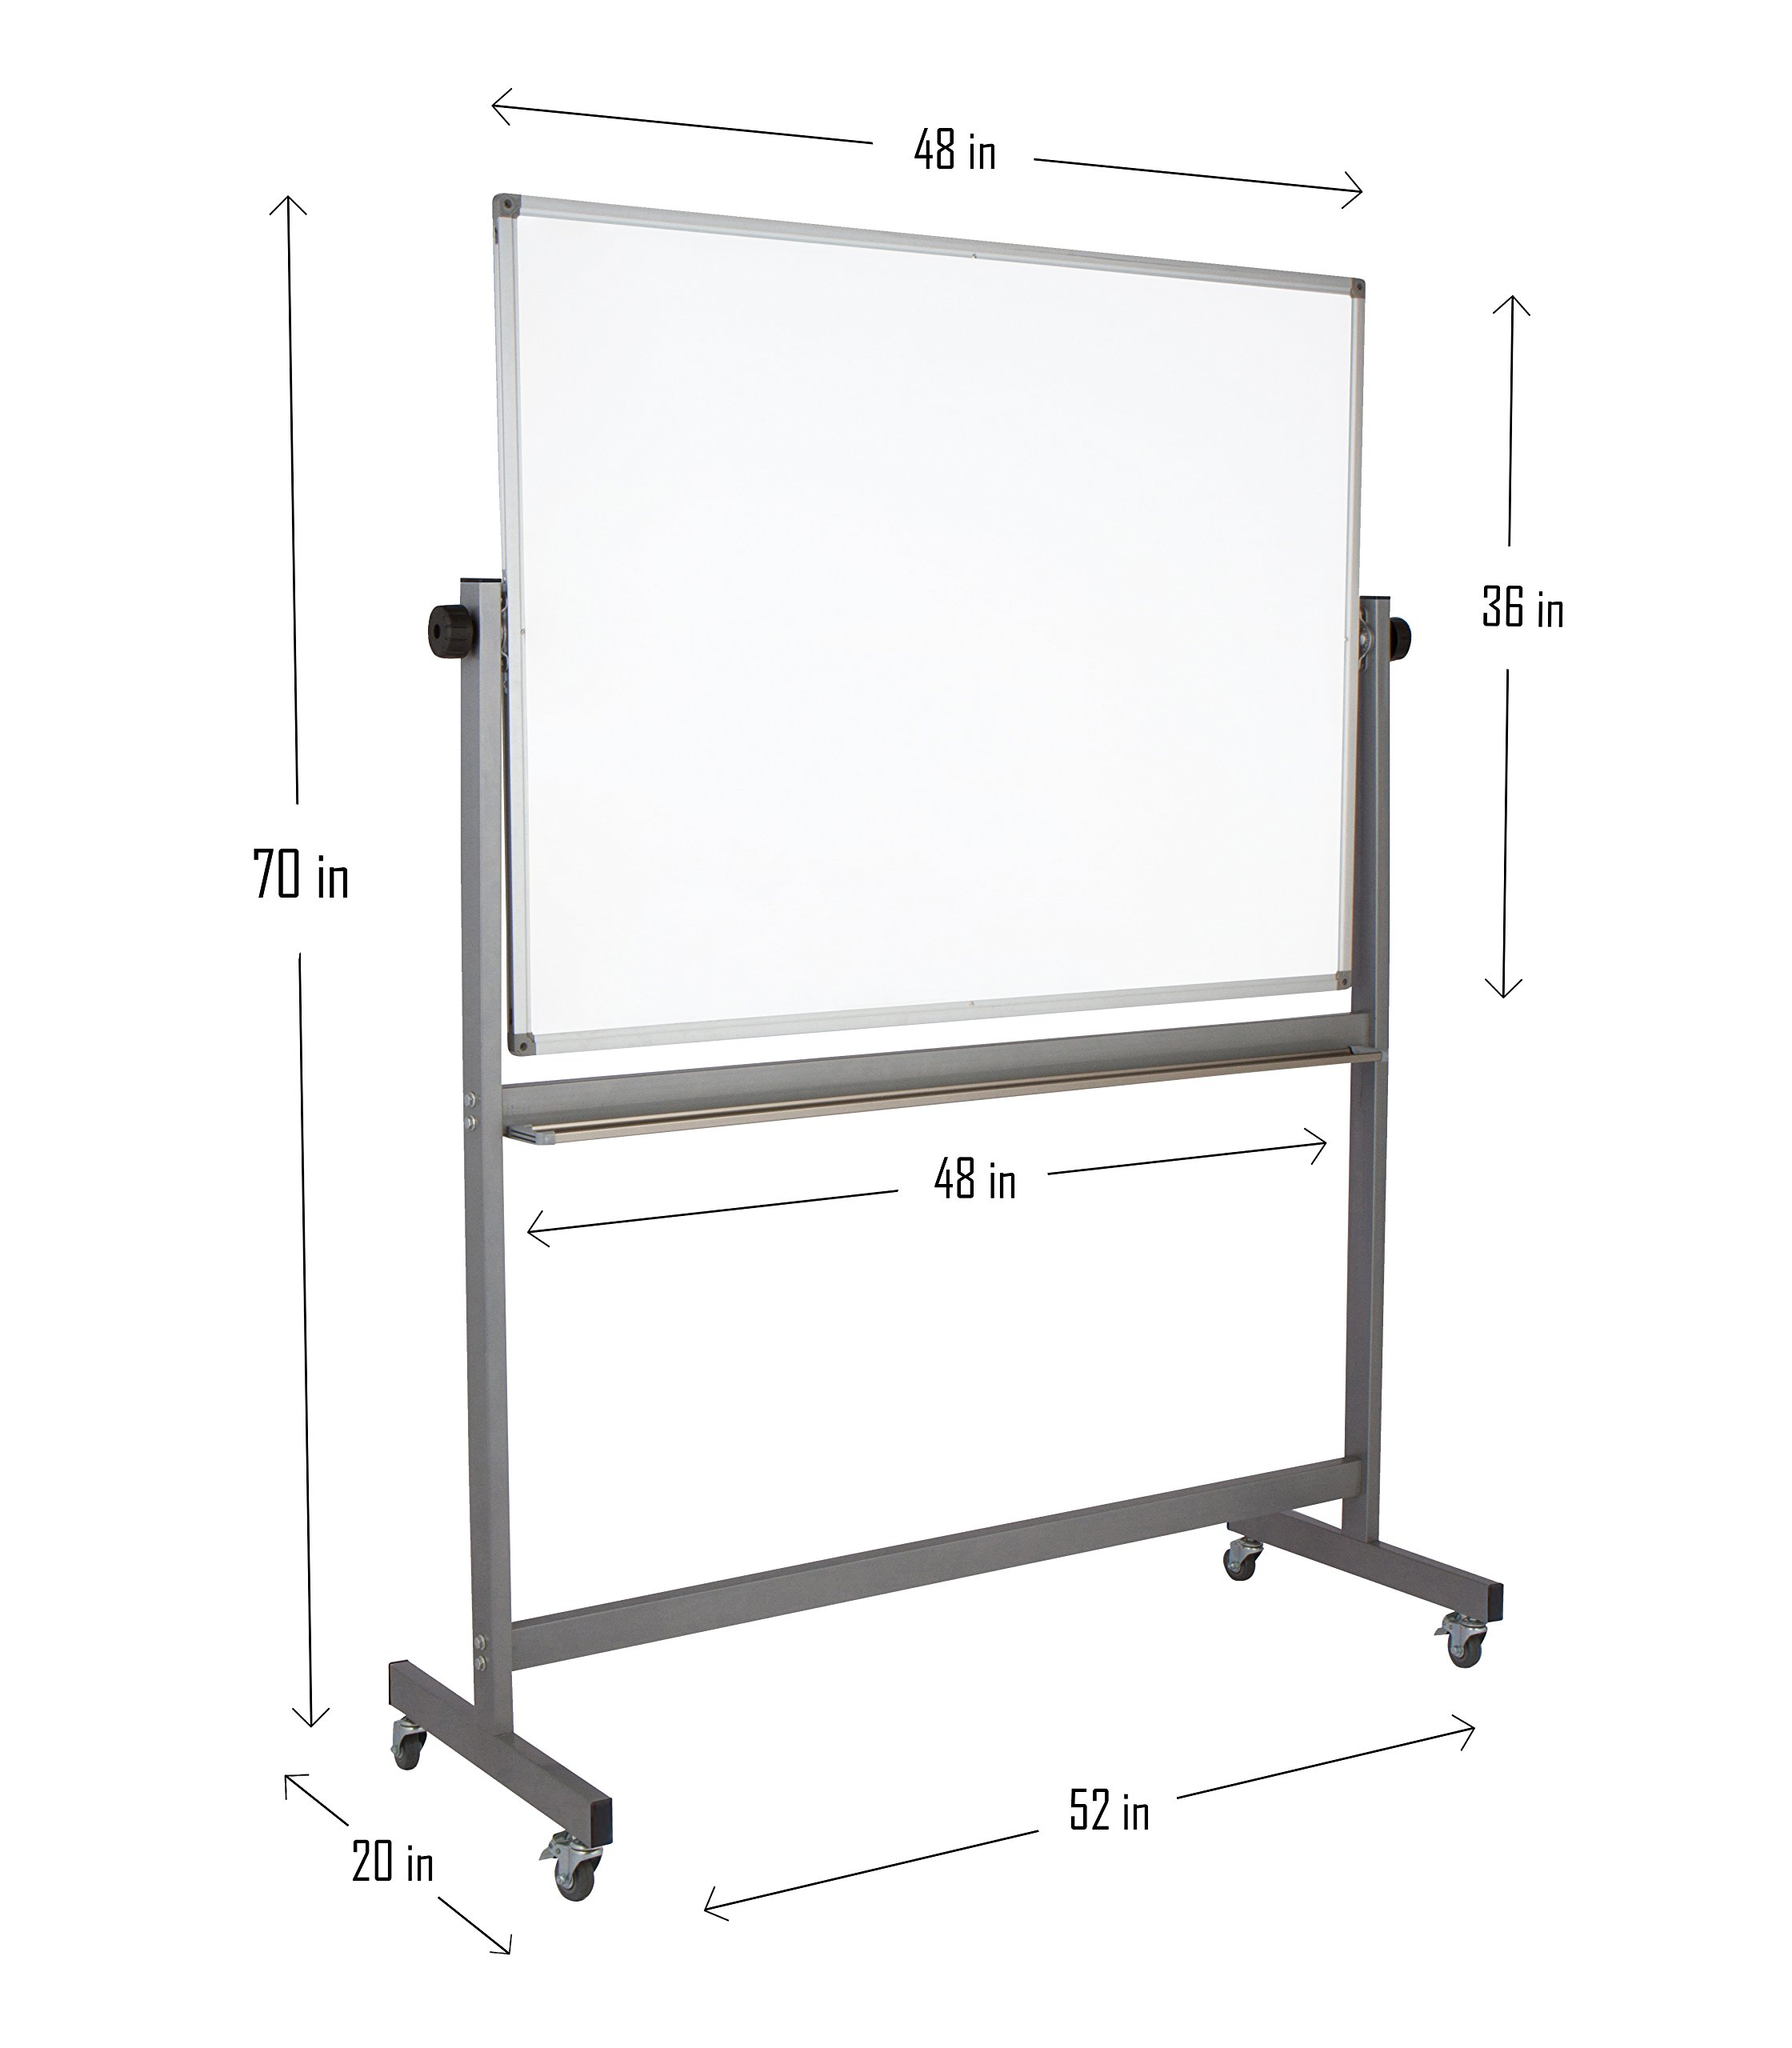 "Magnetic Mobile Whiteboard Large On Stand Double Sided Flip Over Dry Erase Reversible Portable Home Office Classroom Board 36 x 48"" Inch with 4 Markers 12 Magnets Eraser and Ruler Easel Aluminum Frame by Dapper Display (Image #2)"